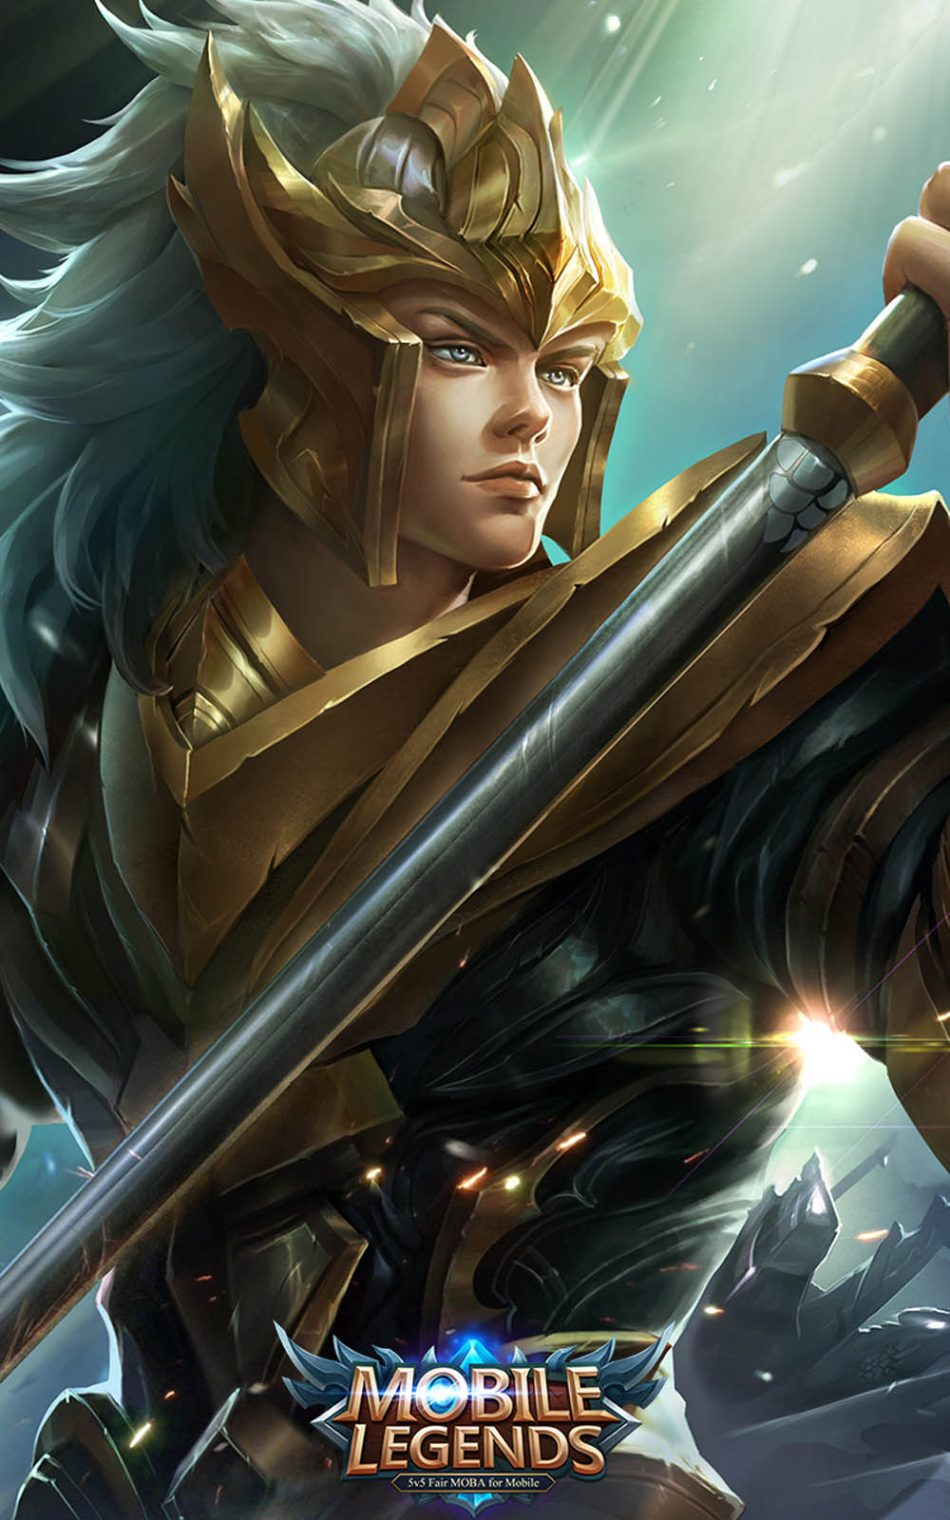 Download Yun Zhao Mobile Legends Hero Free Pure 4k Ultra Hd